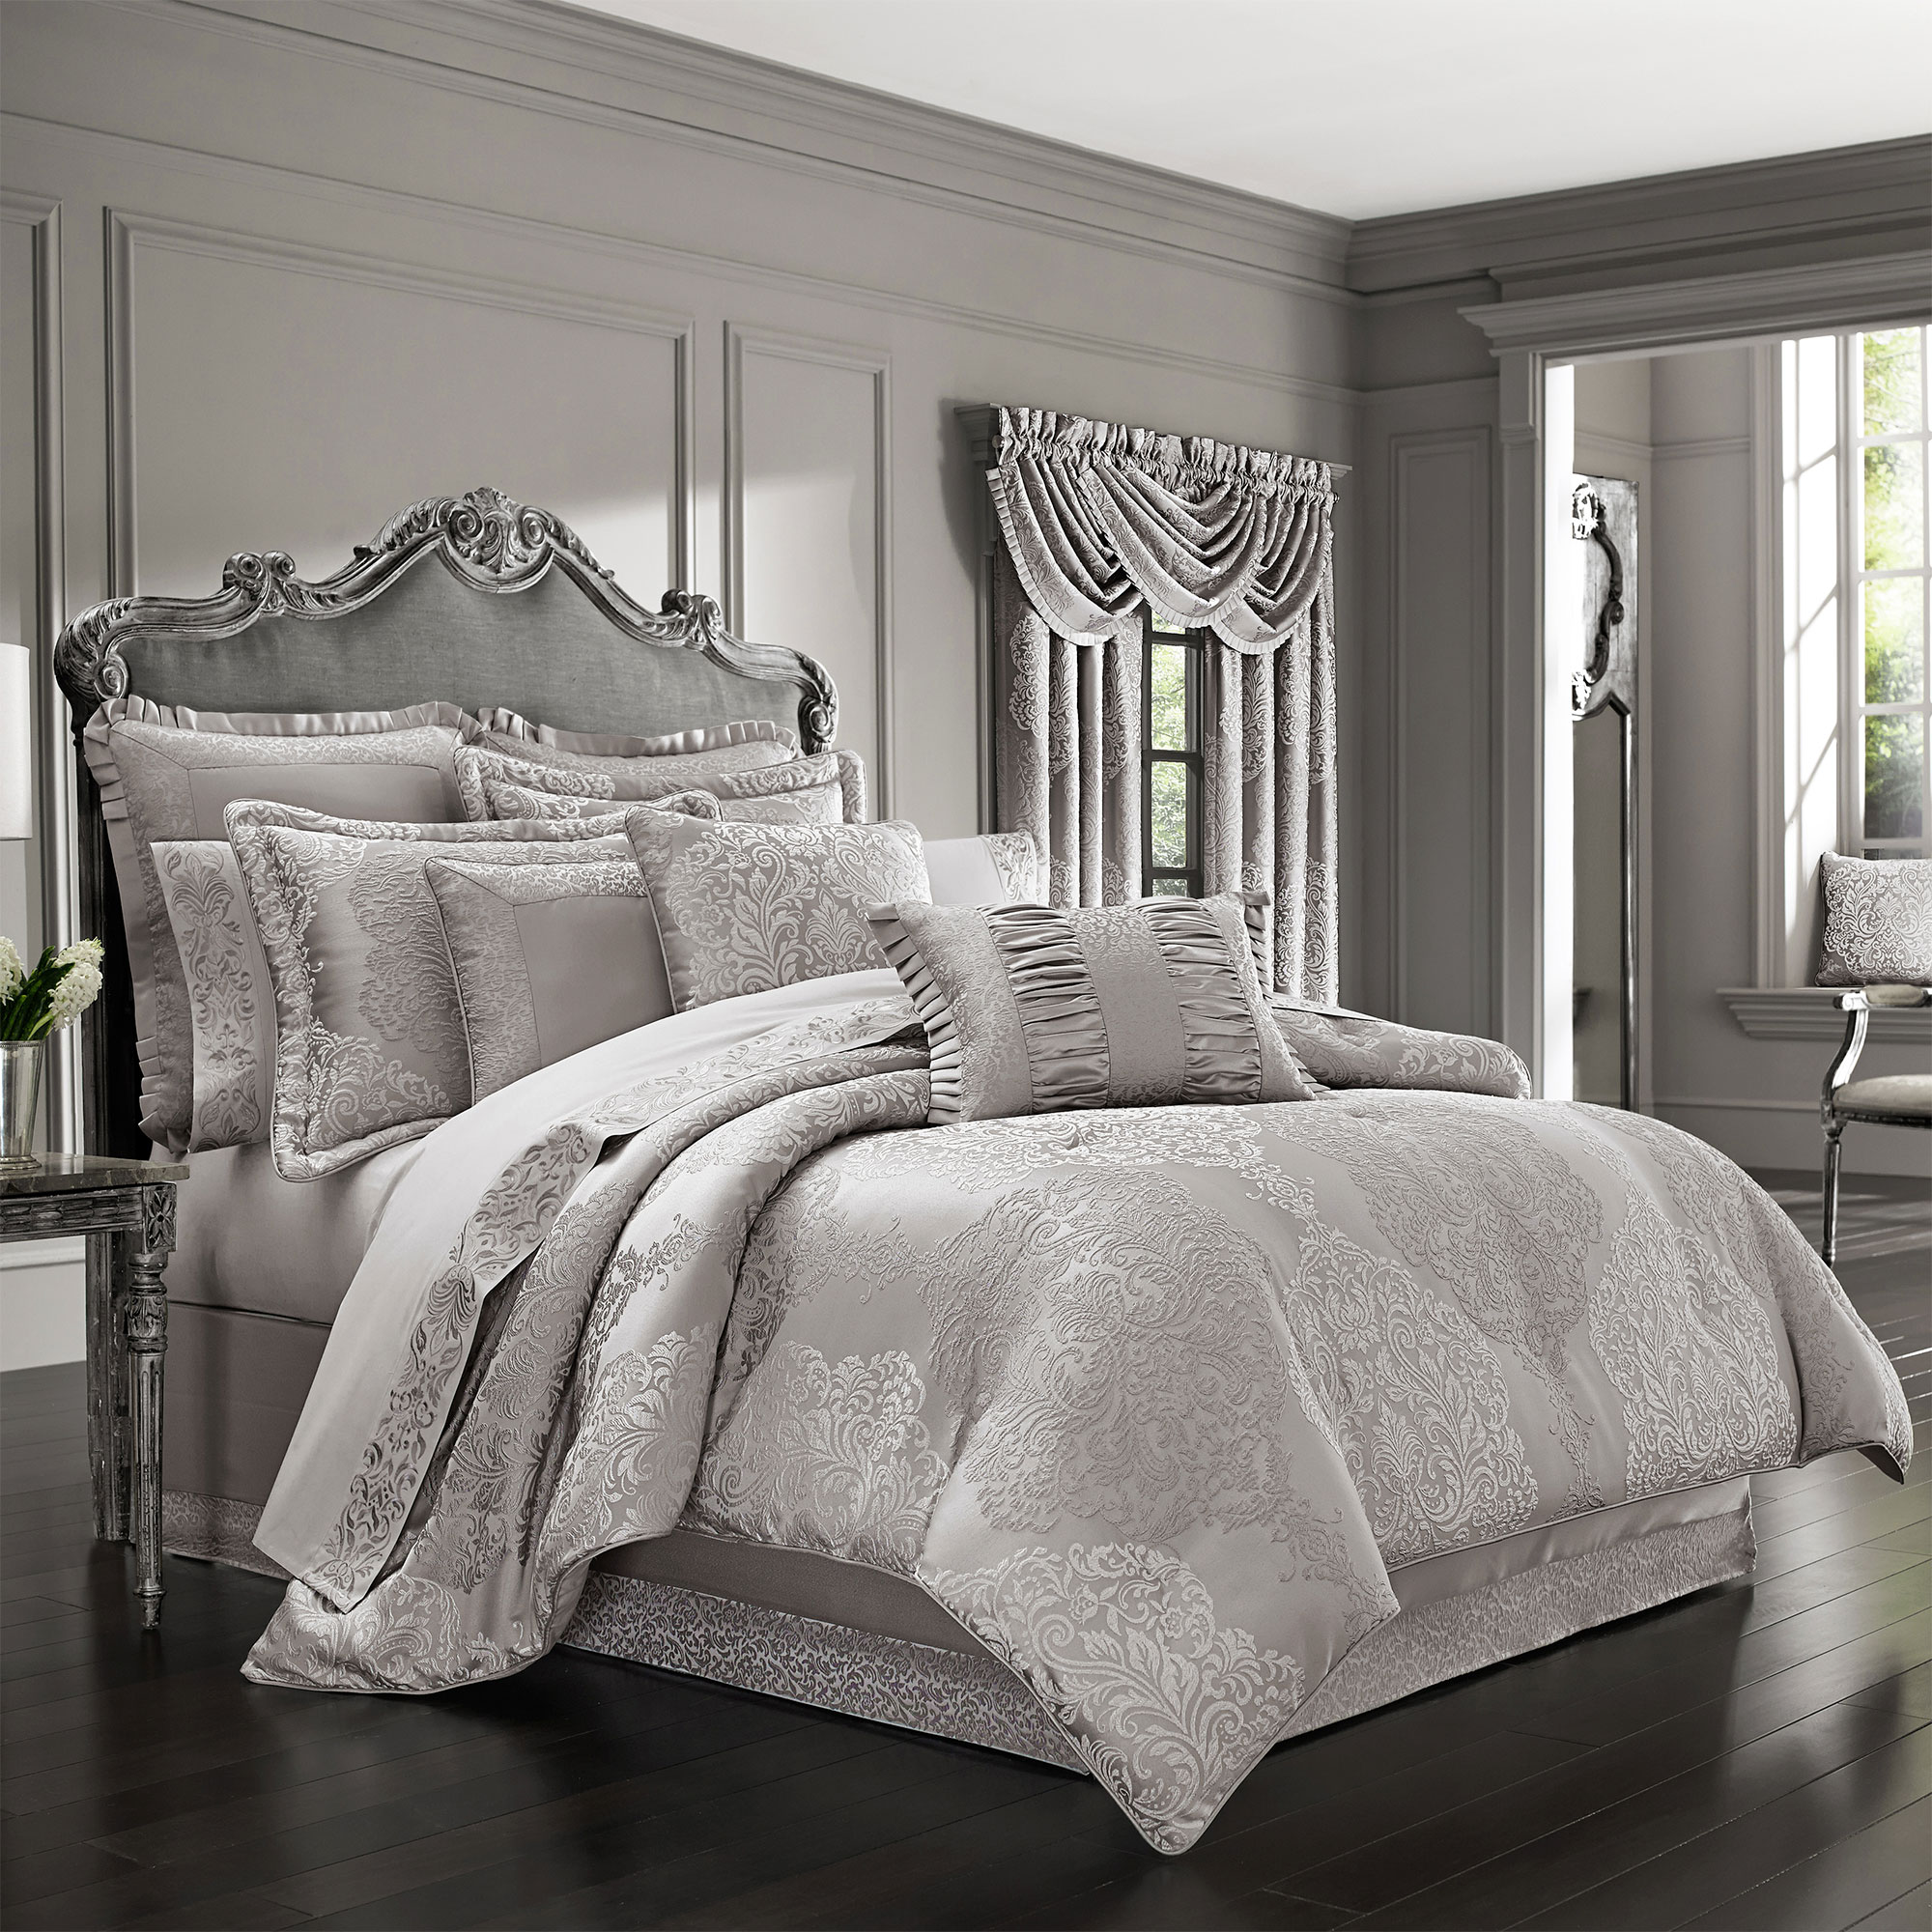 queen chic com silver piece ruth set home sets ip walmart comforter